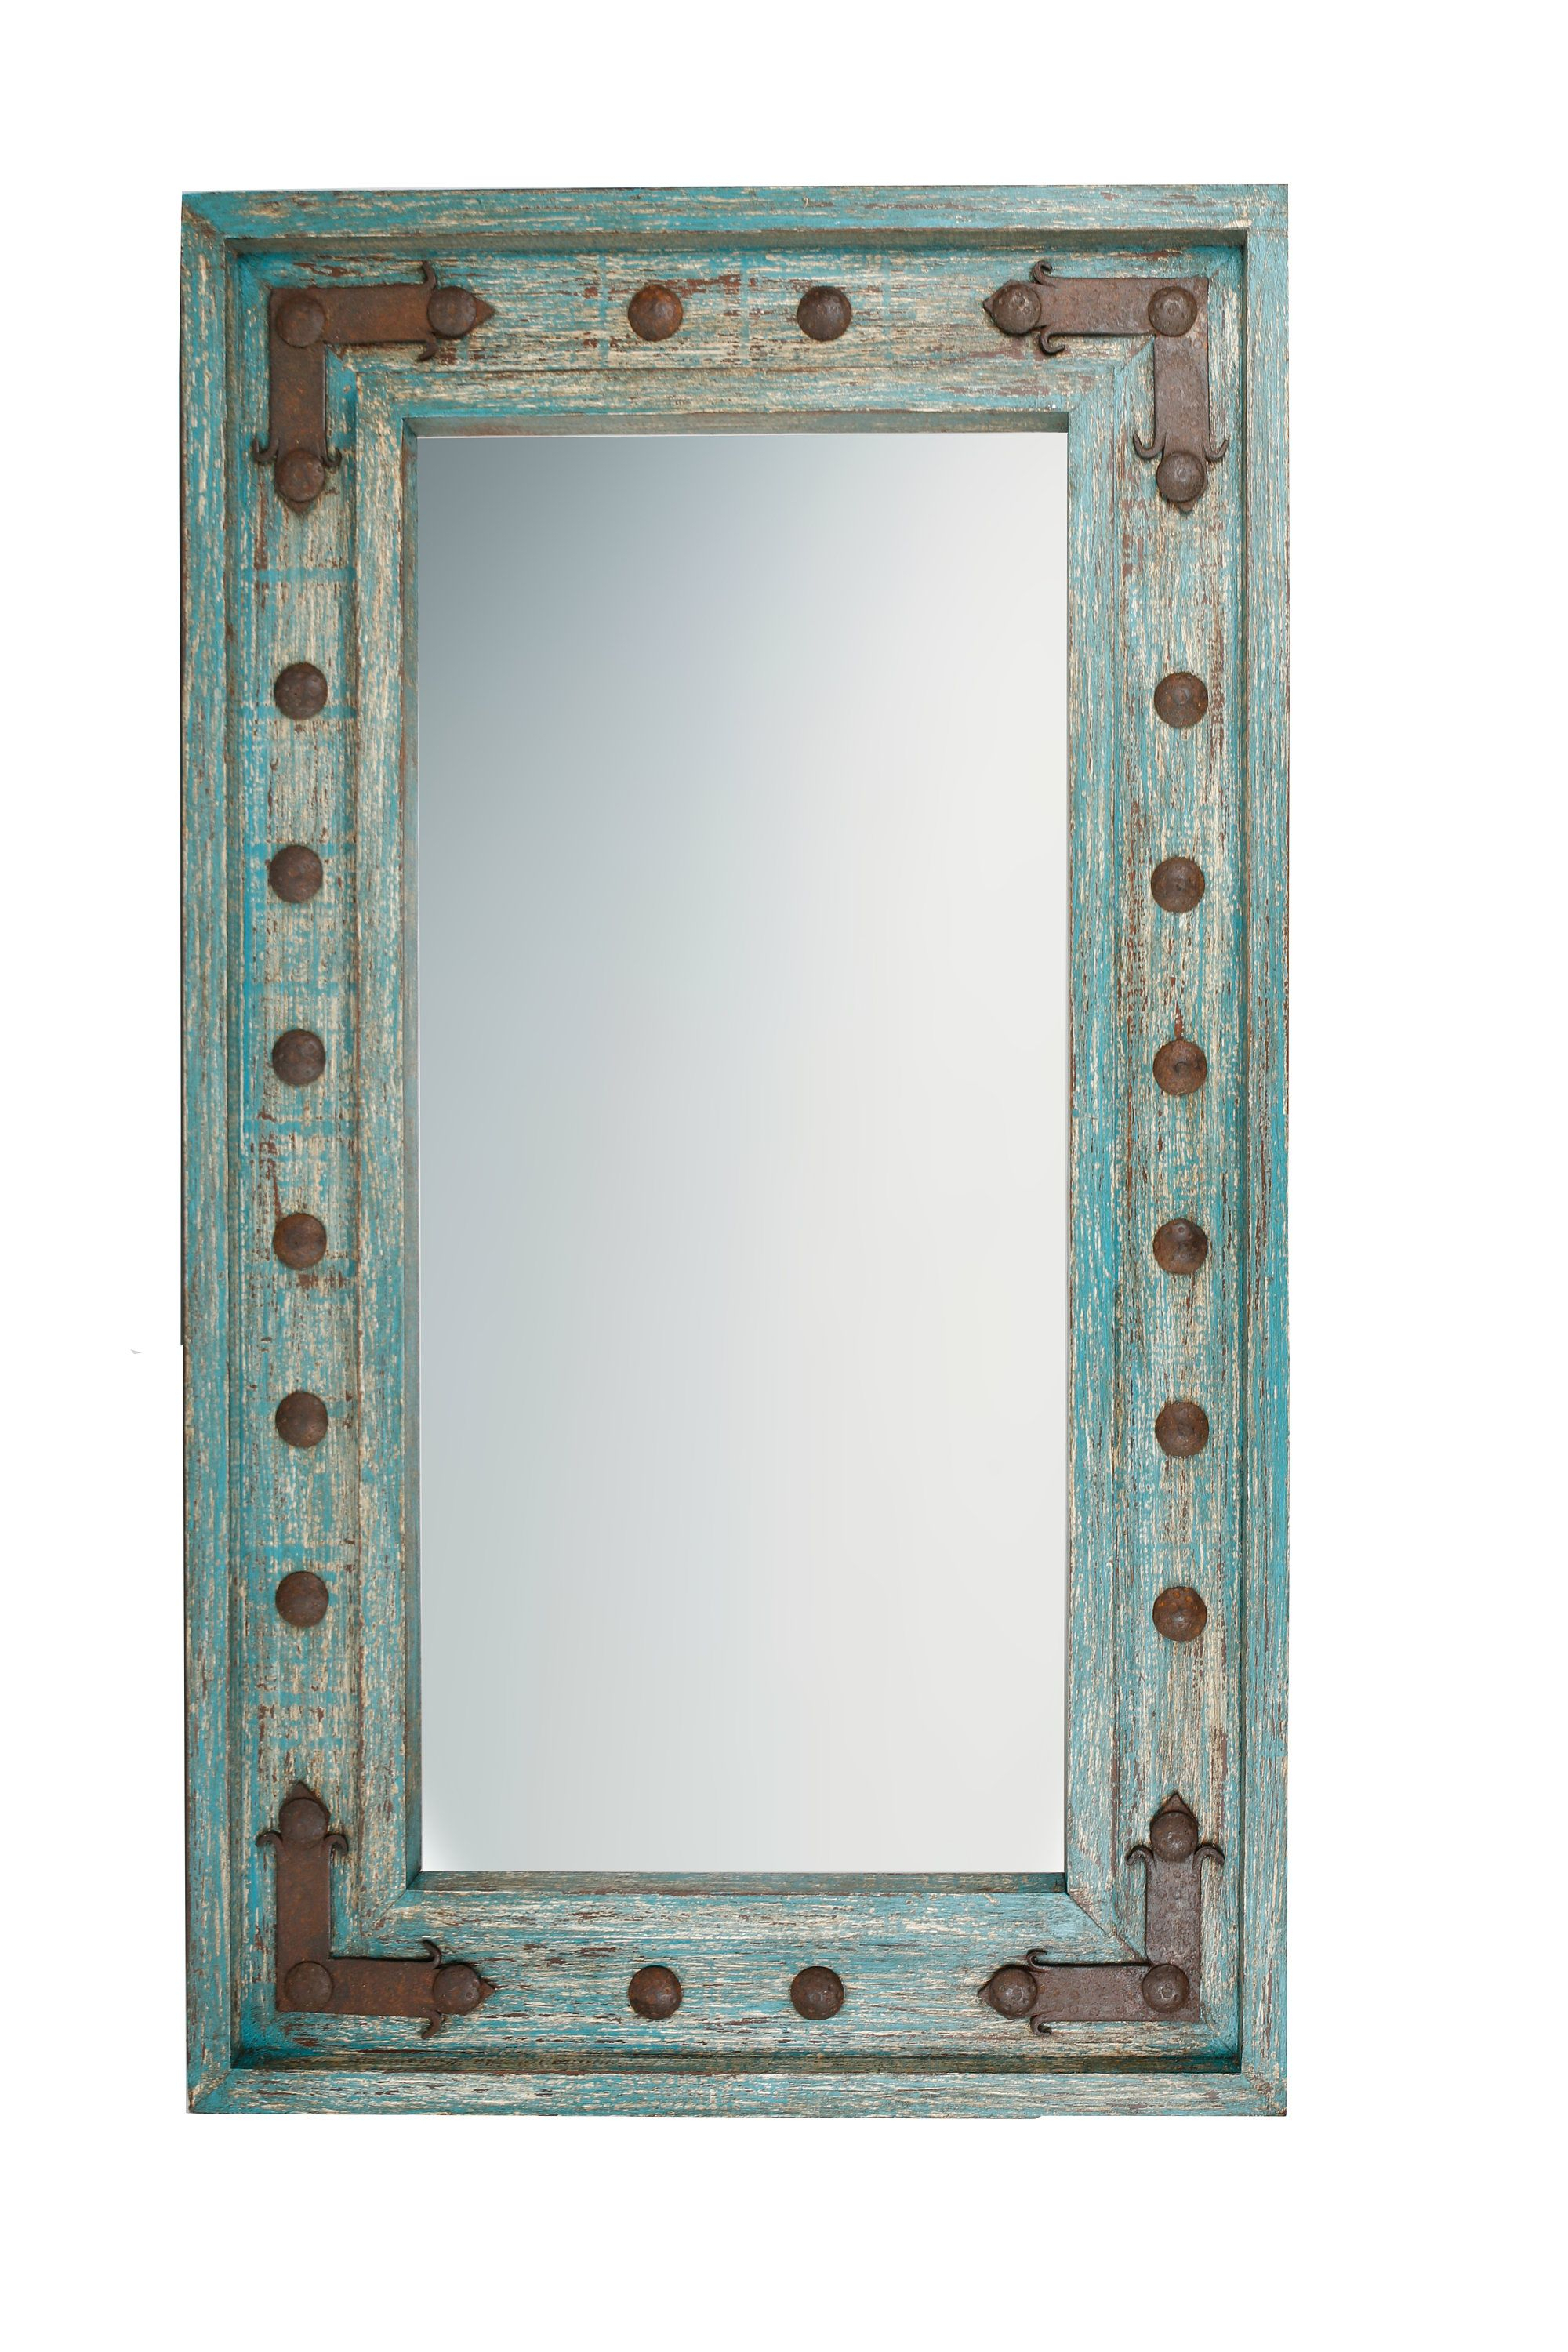 Soluna Rustic Mirror Wood Mexican 20X34 Distressed Turquoise With Lajoie Rustic Accent Mirrors (View 9 of 20)